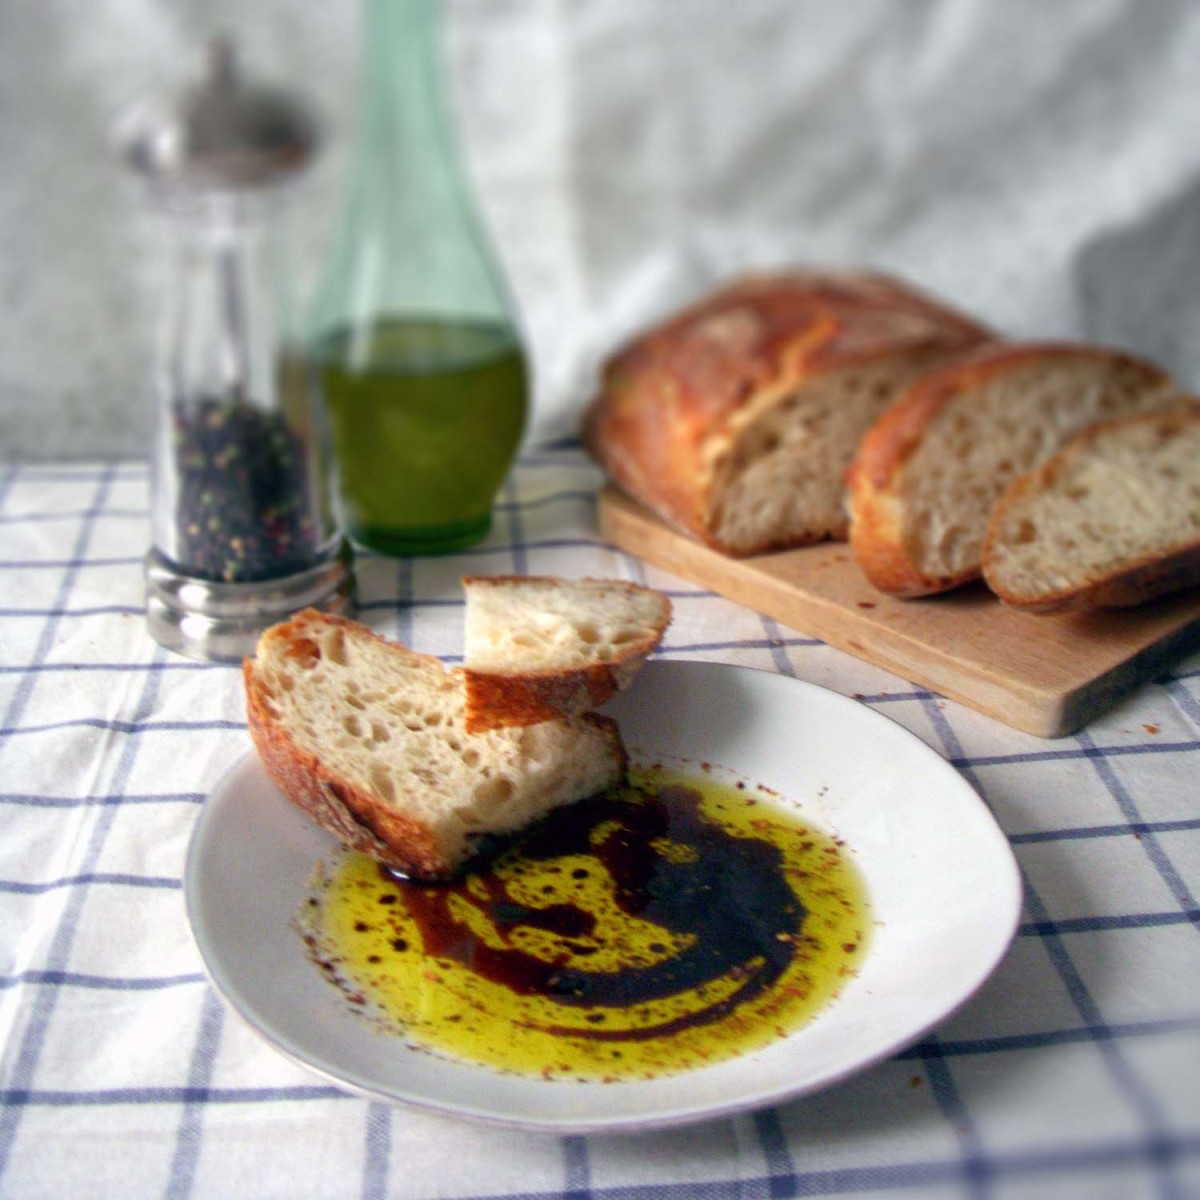 Bread + Balsamic + Olive Oil = Instant Hangover Prevention